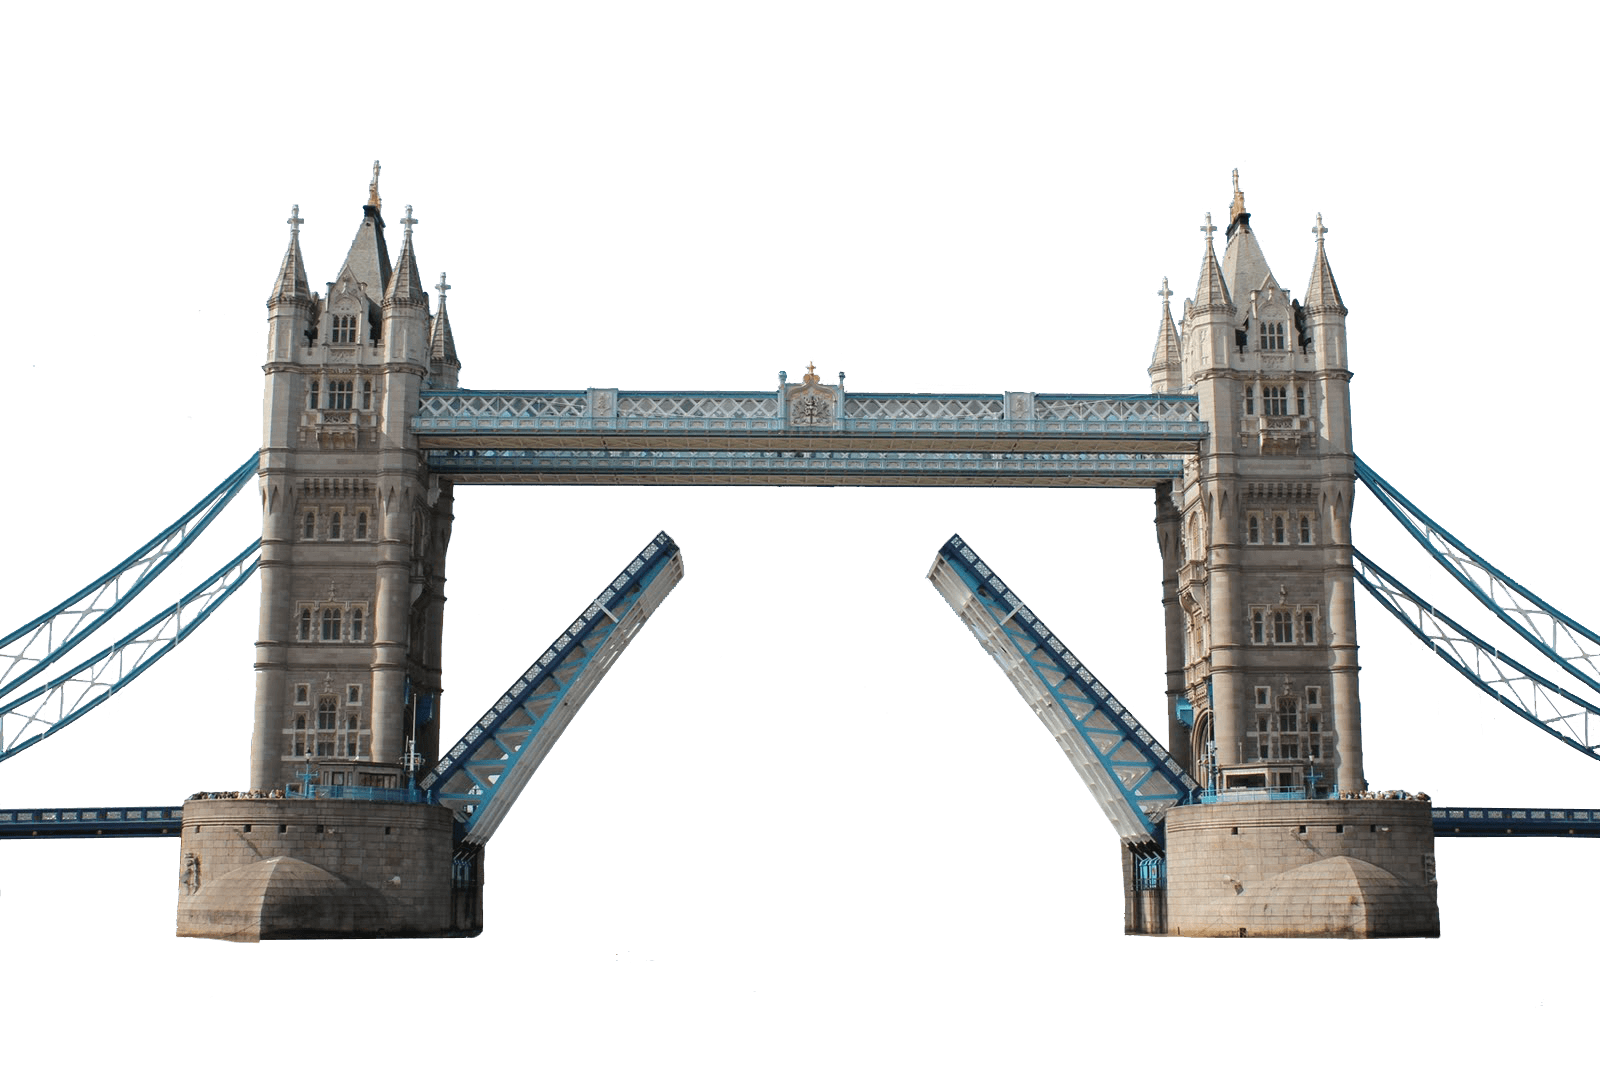 Tower of london clipart with translucent background clip art freeuse download Tower Bridge London transparent PNG - StickPNG clip art freeuse download